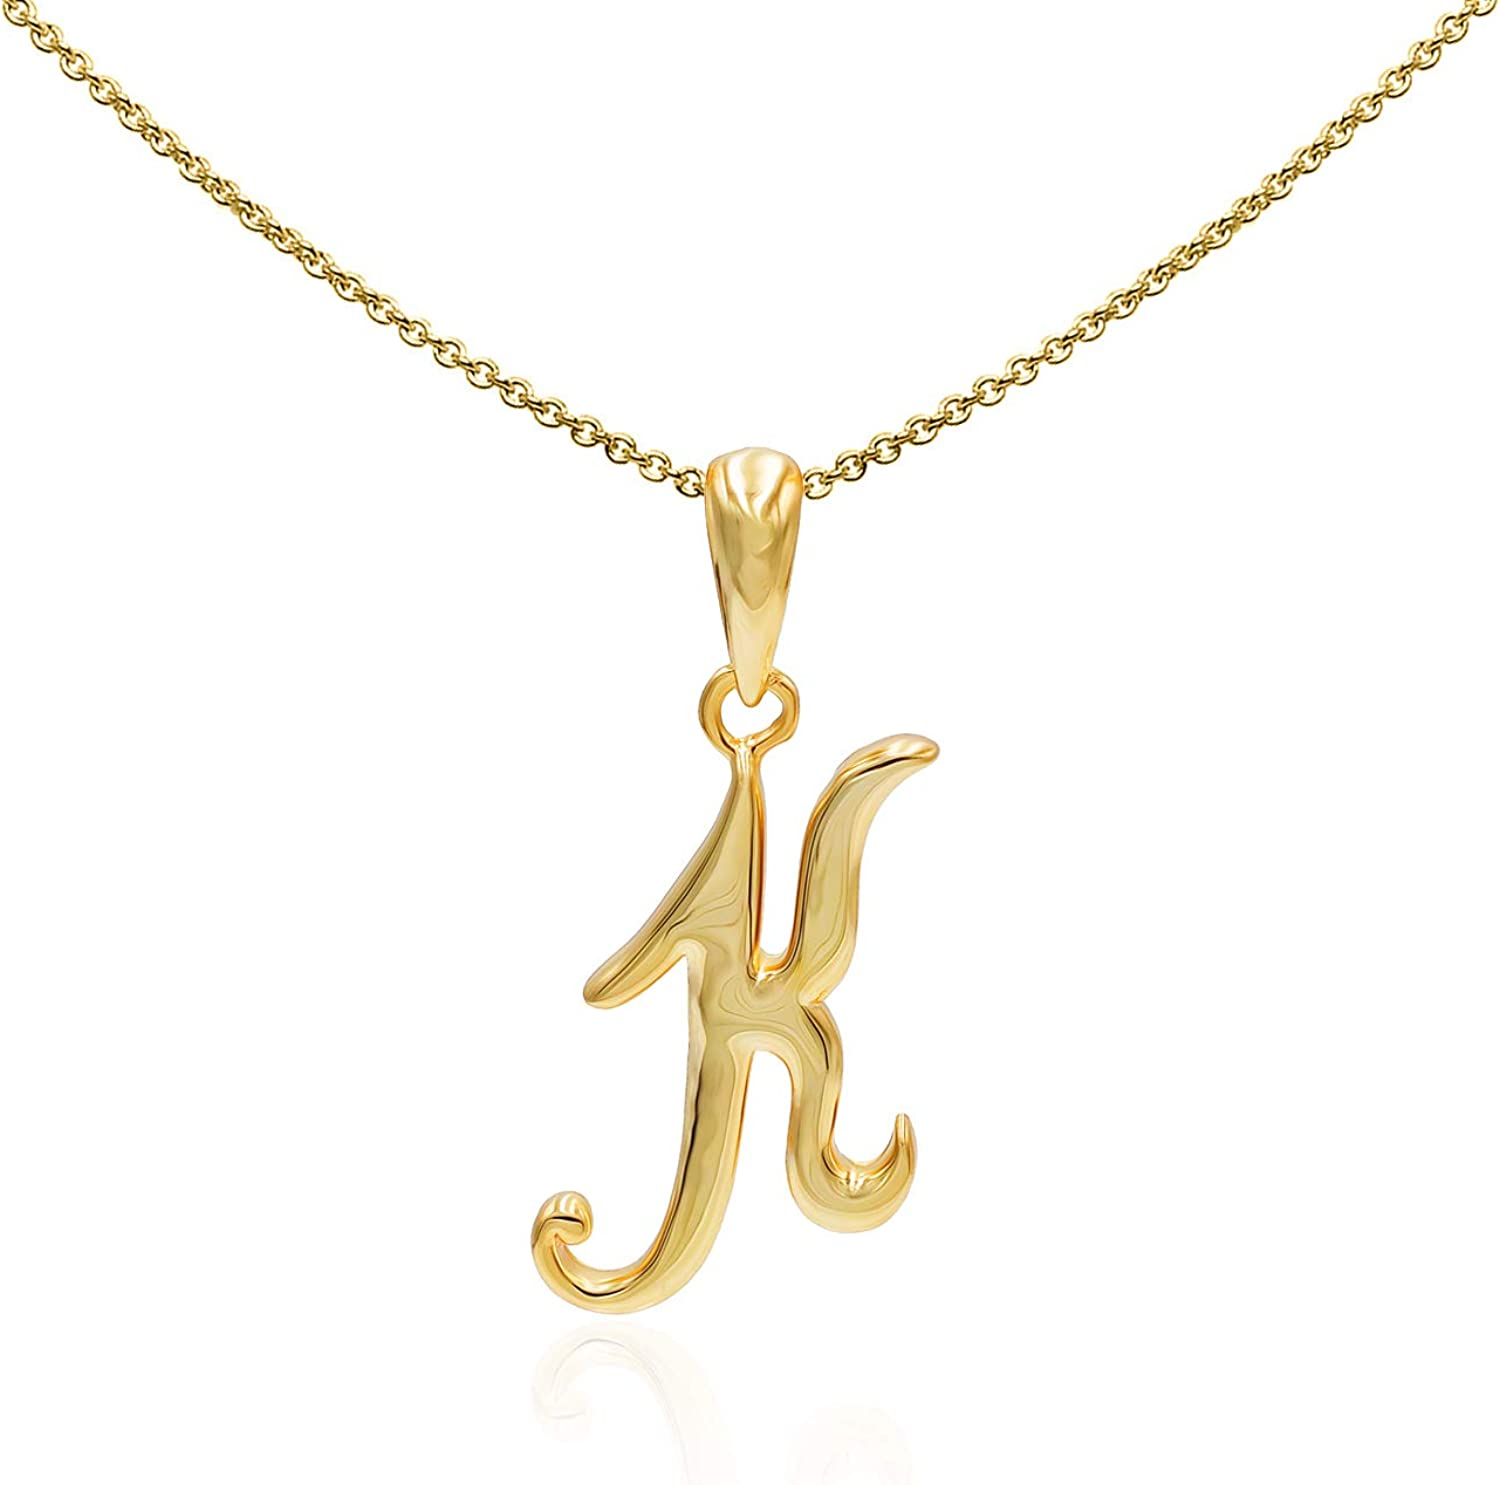 Sea of Ice Sterling Silver Initial Alphabet Letters Pendant Necklace from A-Z, 18 inch